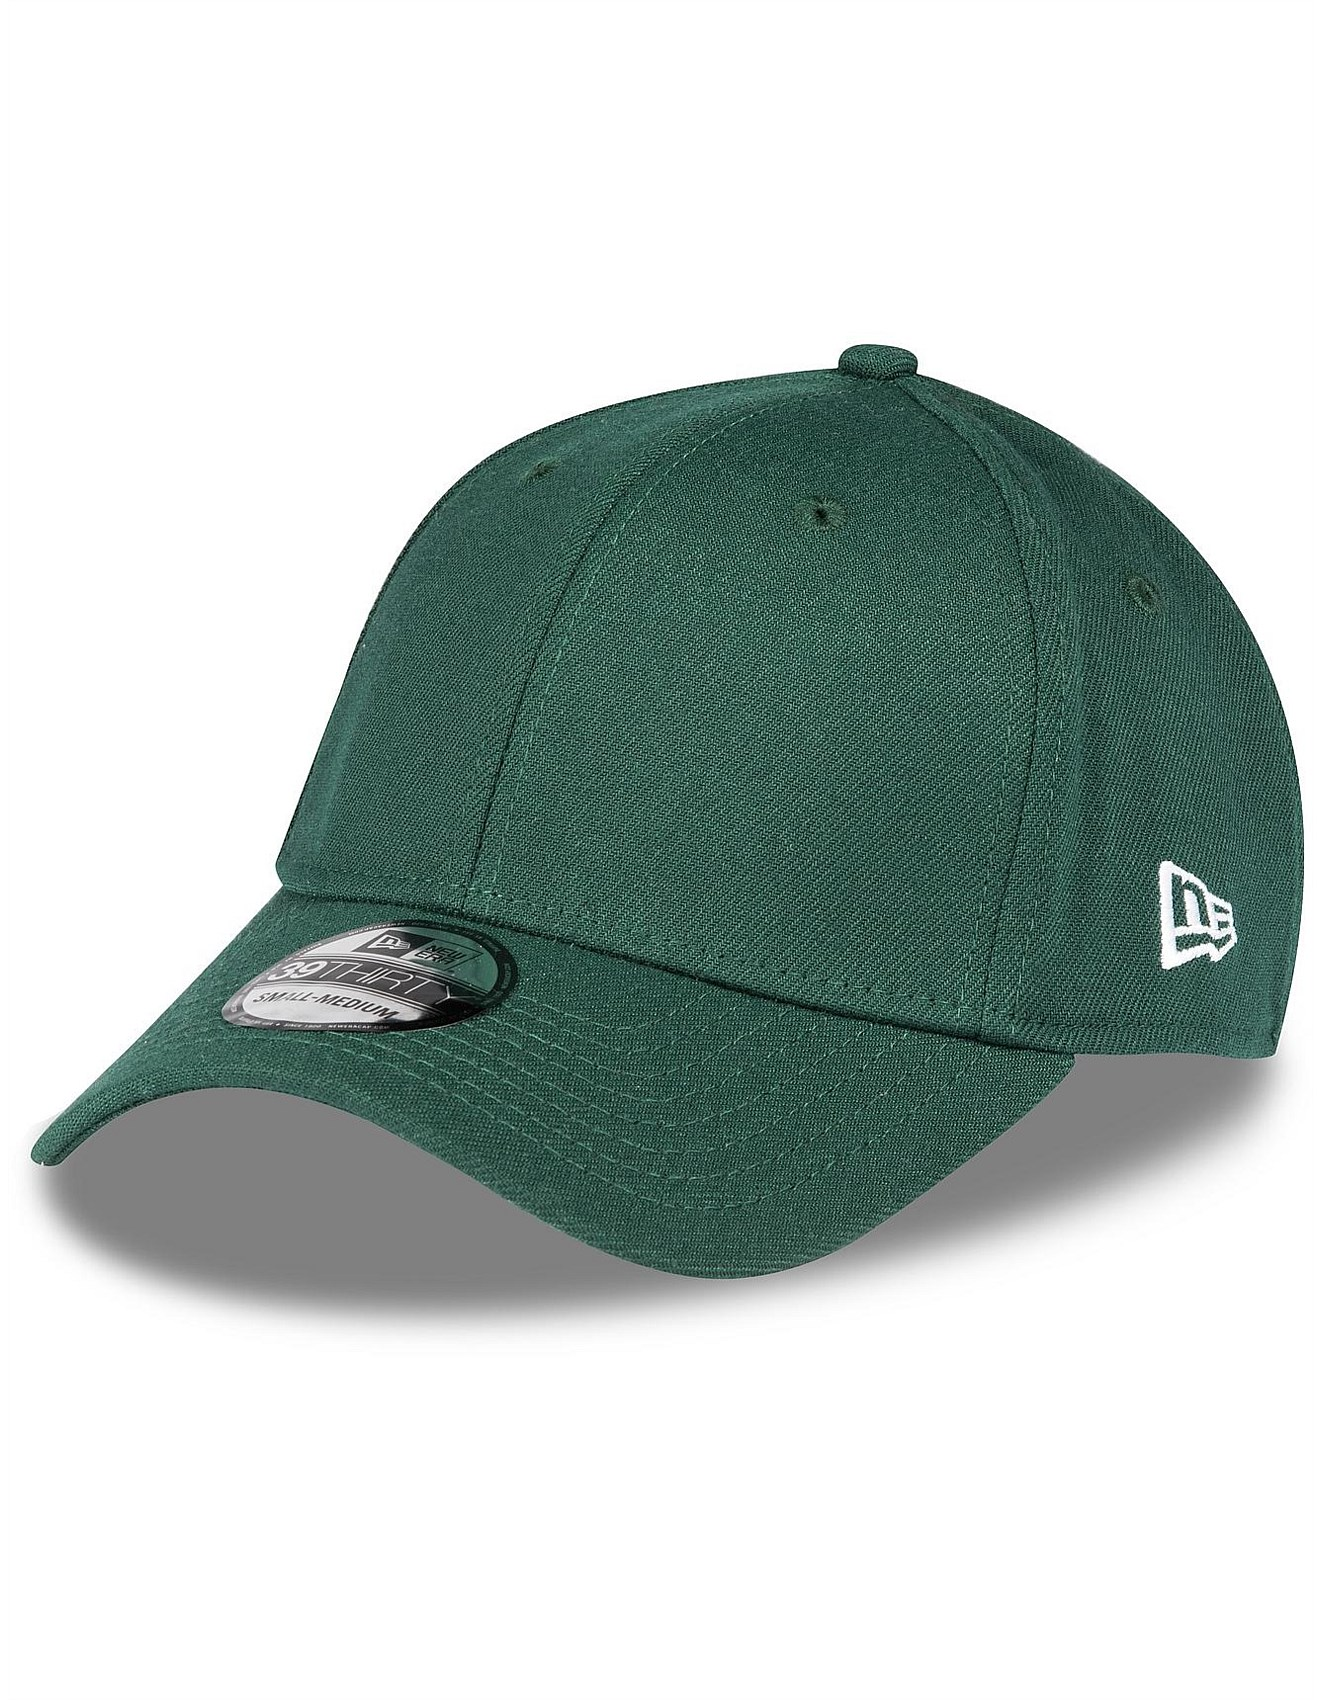 39THIRTY PLAIN SNAPBACK CAP ¿ DARK GREEN 7d2a0106356